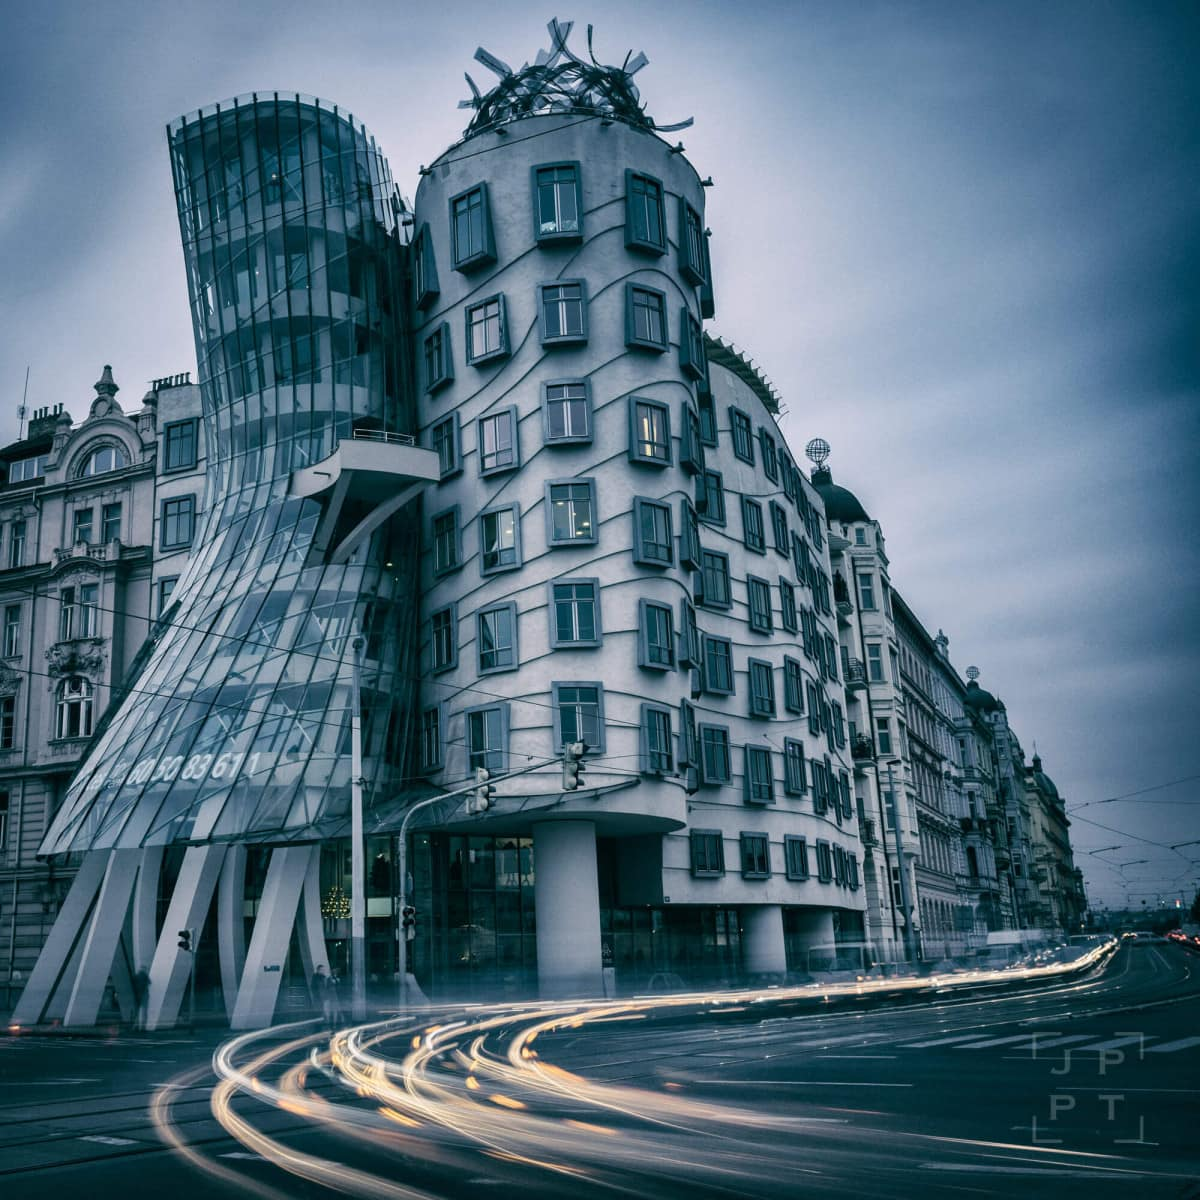 Dancing house at dusk